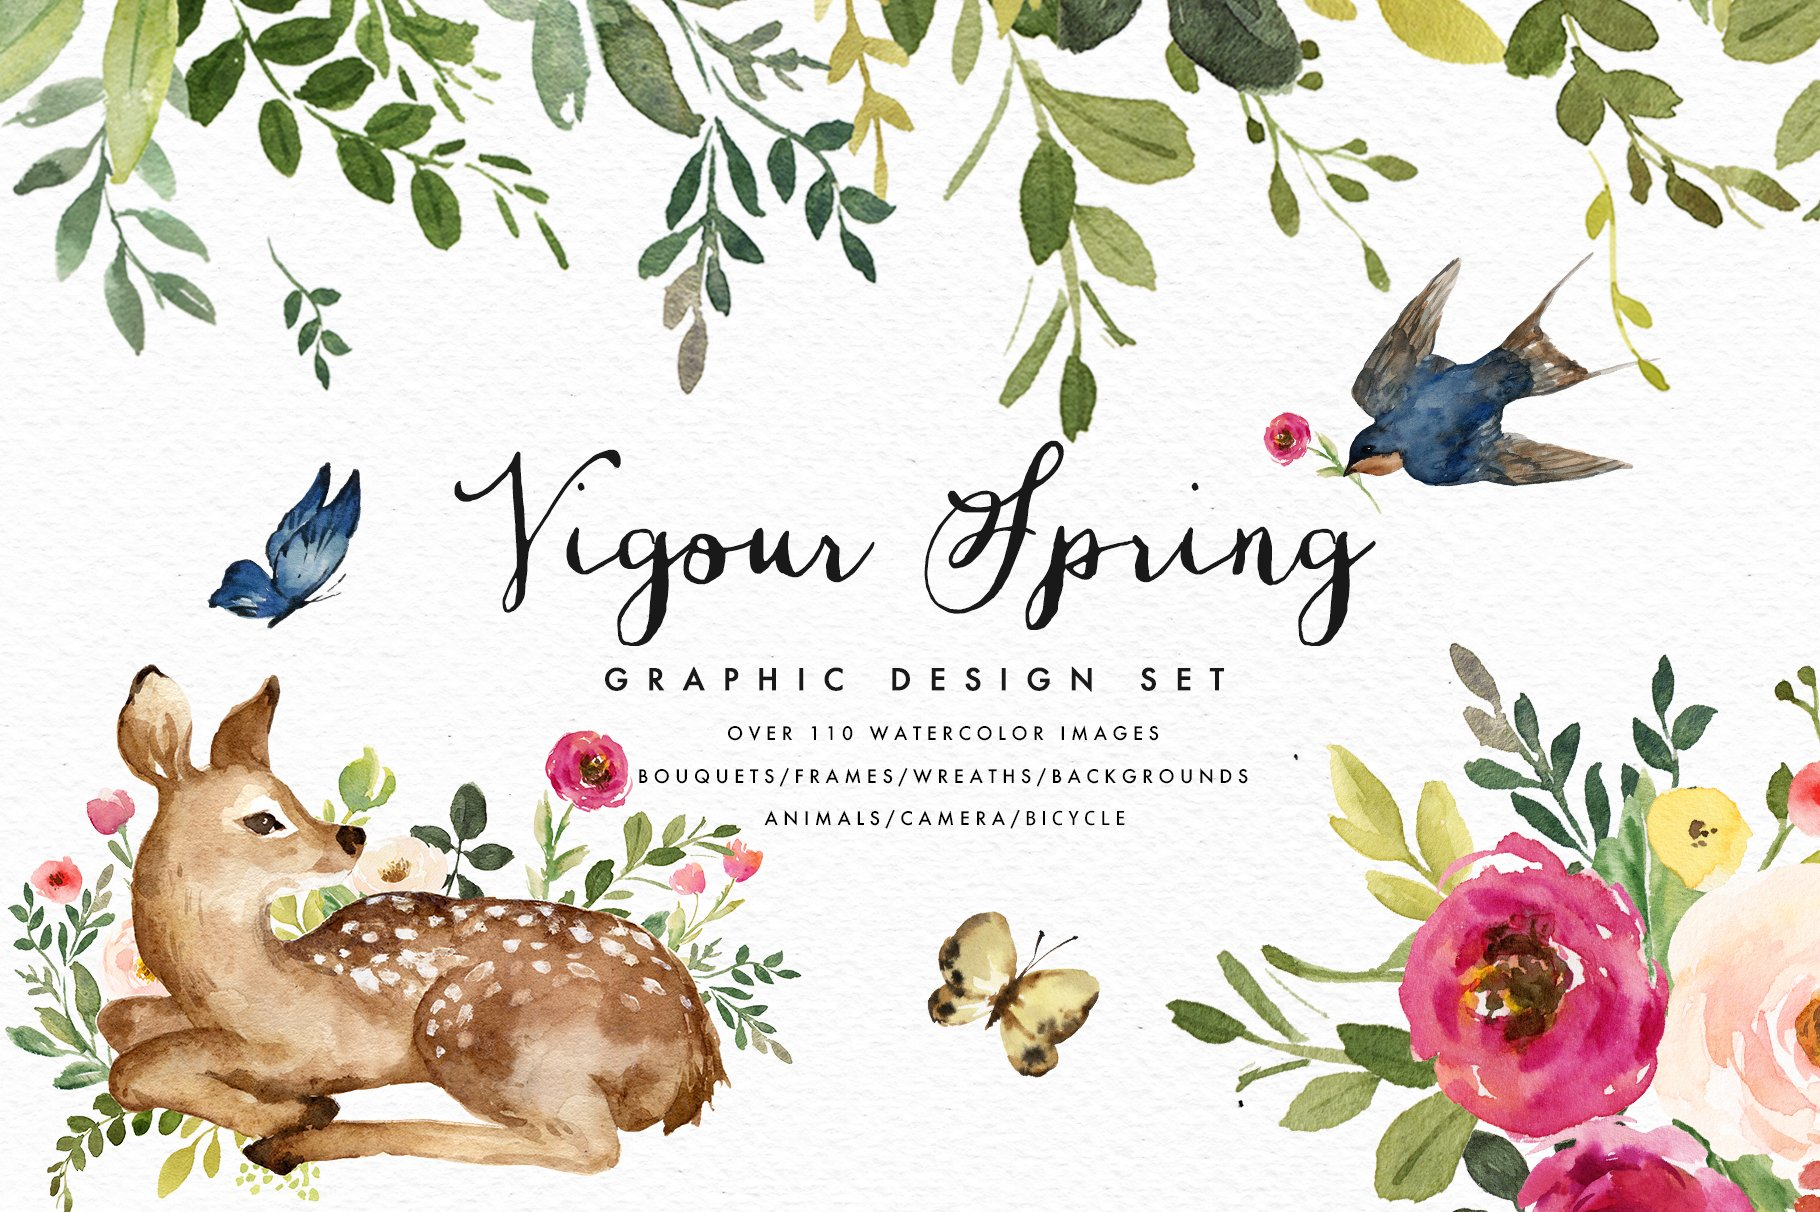 Vigorous Spring Graphic Design Set Illustrations Creative Market